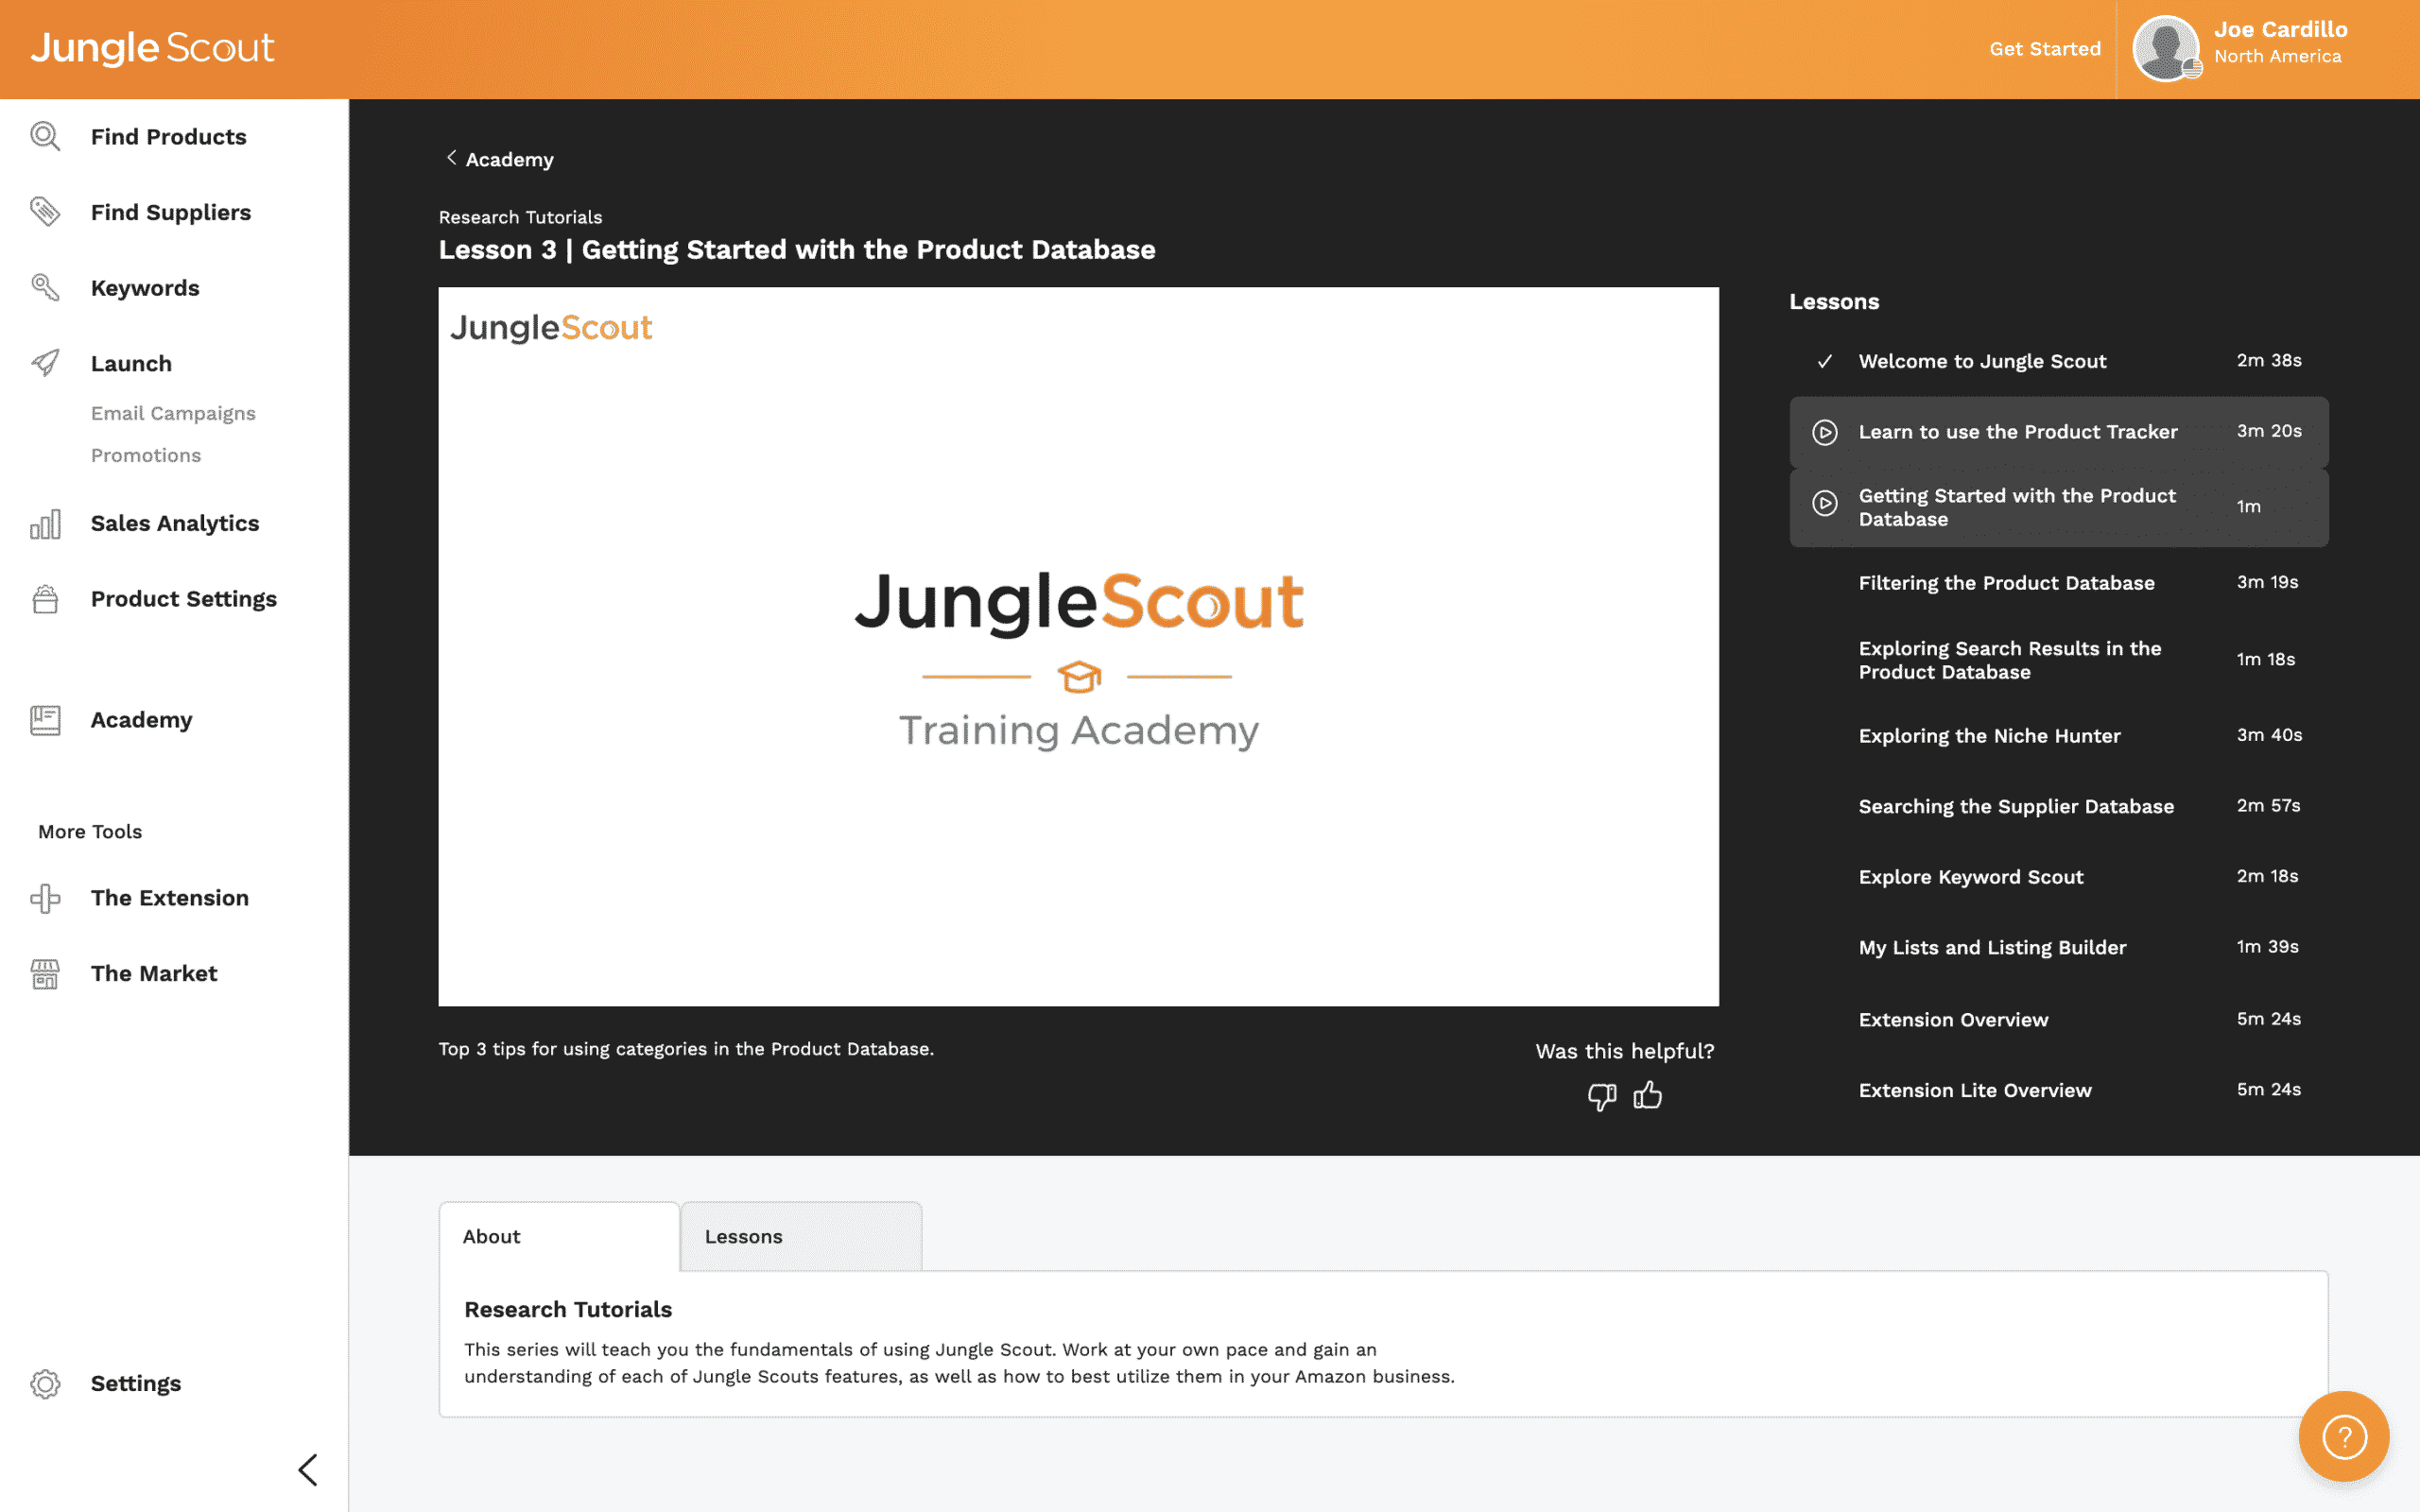 The Jungle Scout Academy video player